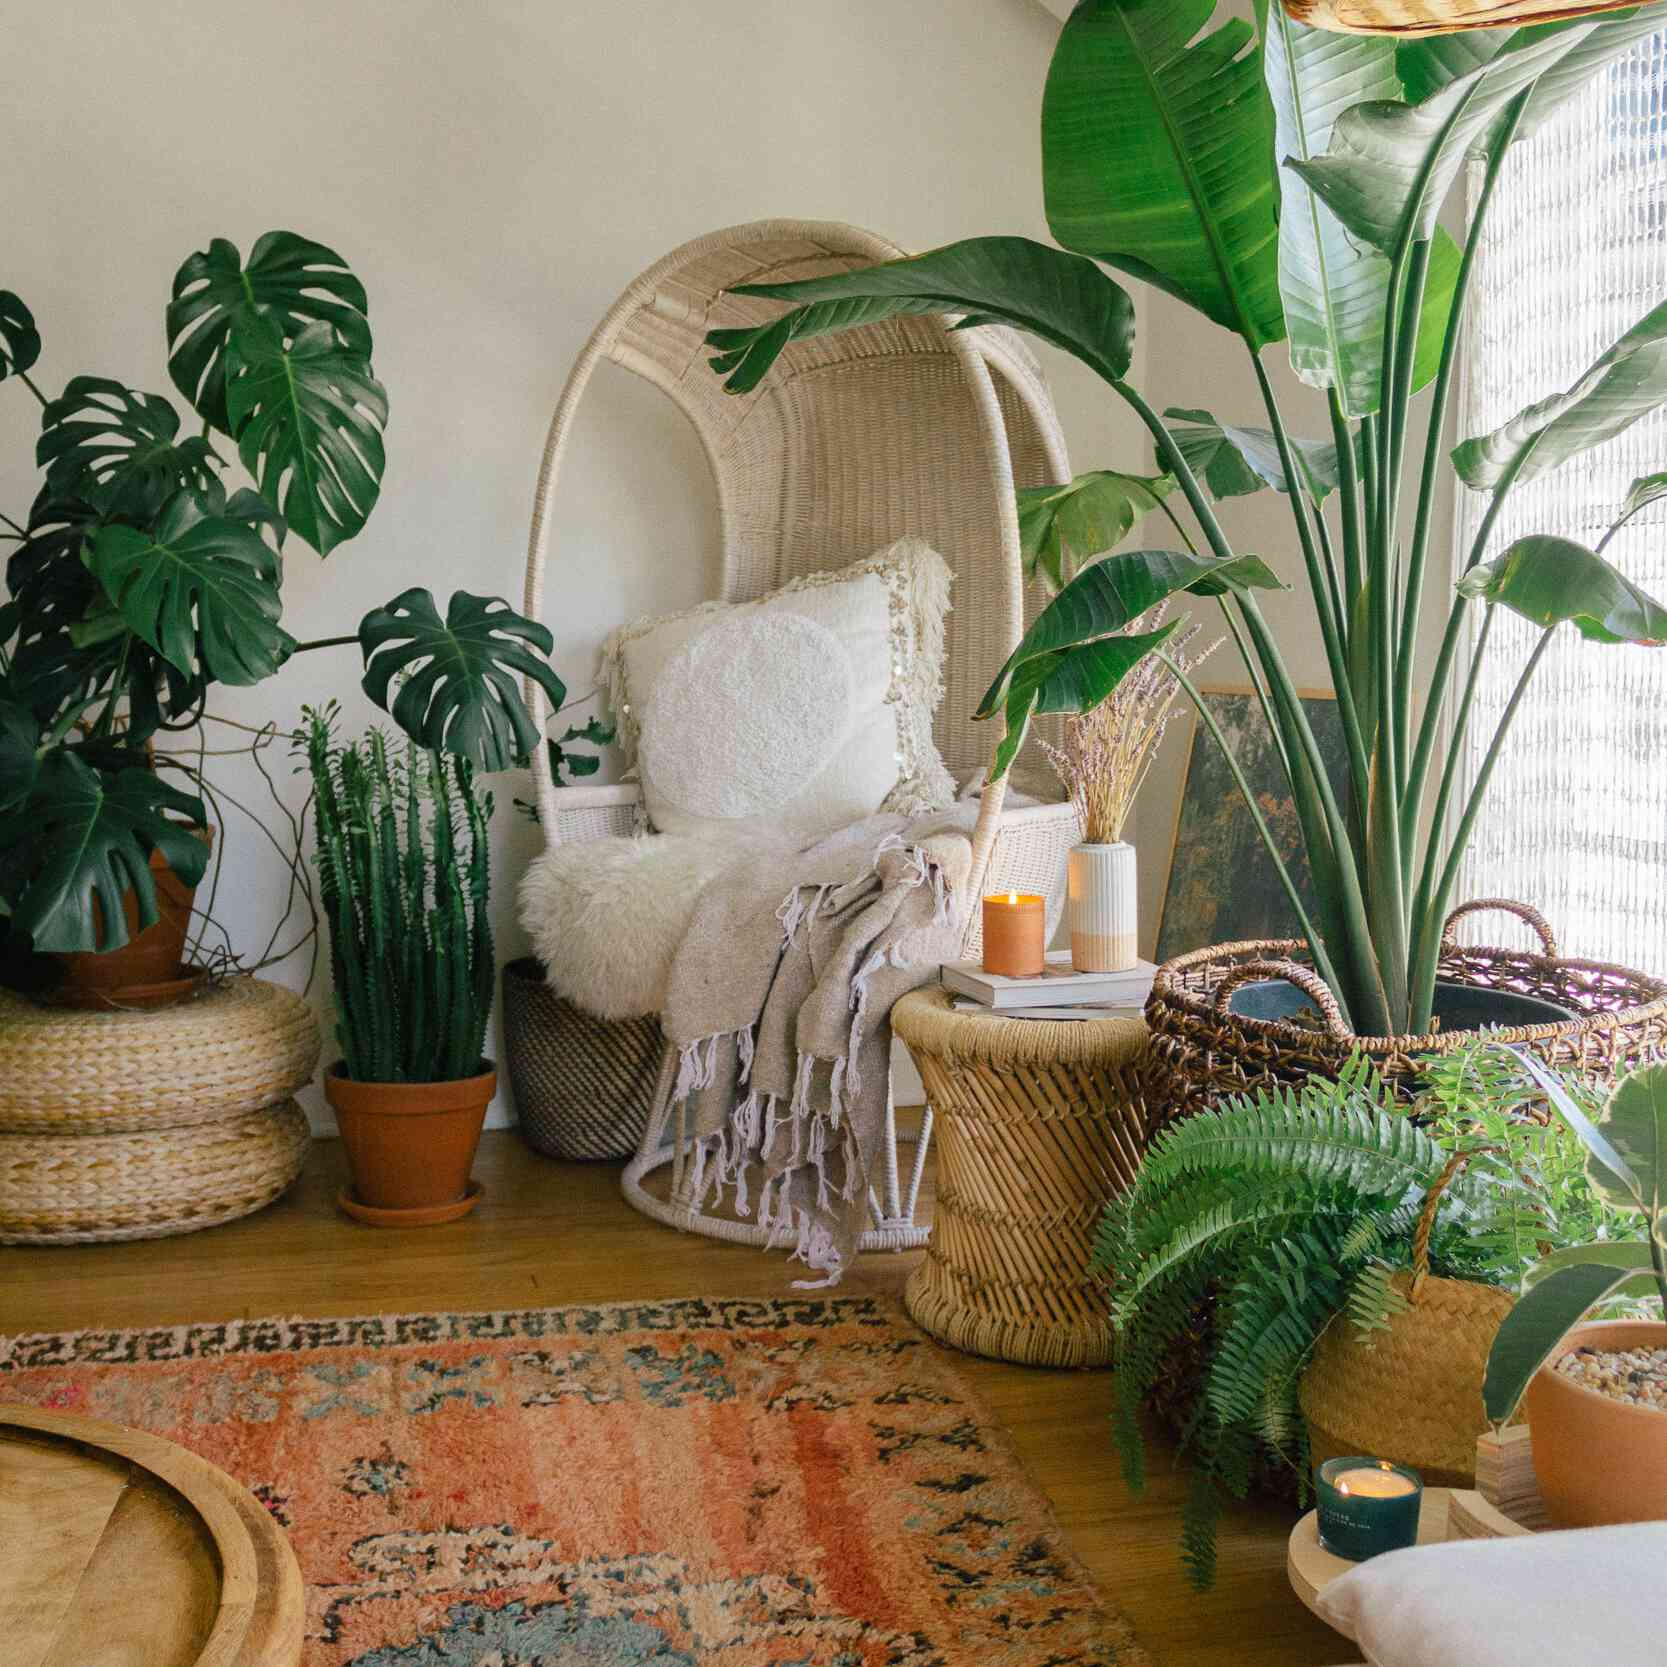 A room full of plants and a printed rug